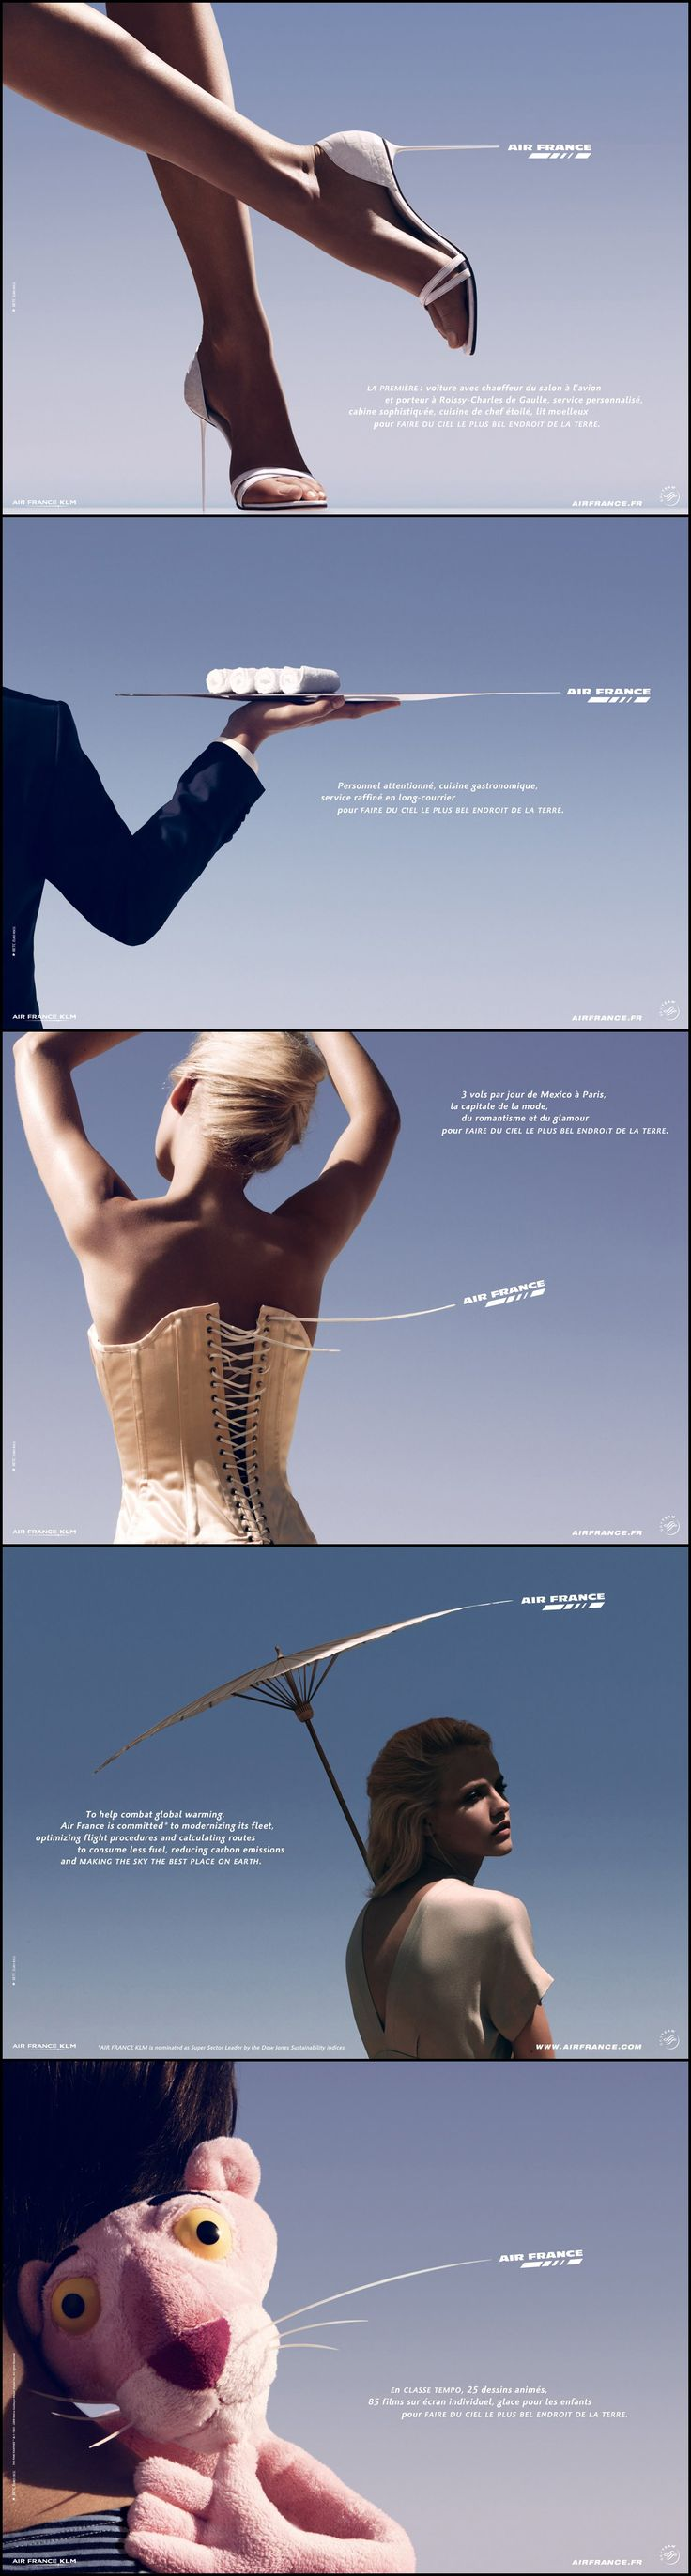 Sweet ad series from Air France. Classy and classic. Pinned by Ignite Design & Advertising, Inc. www.clickandcombust.com